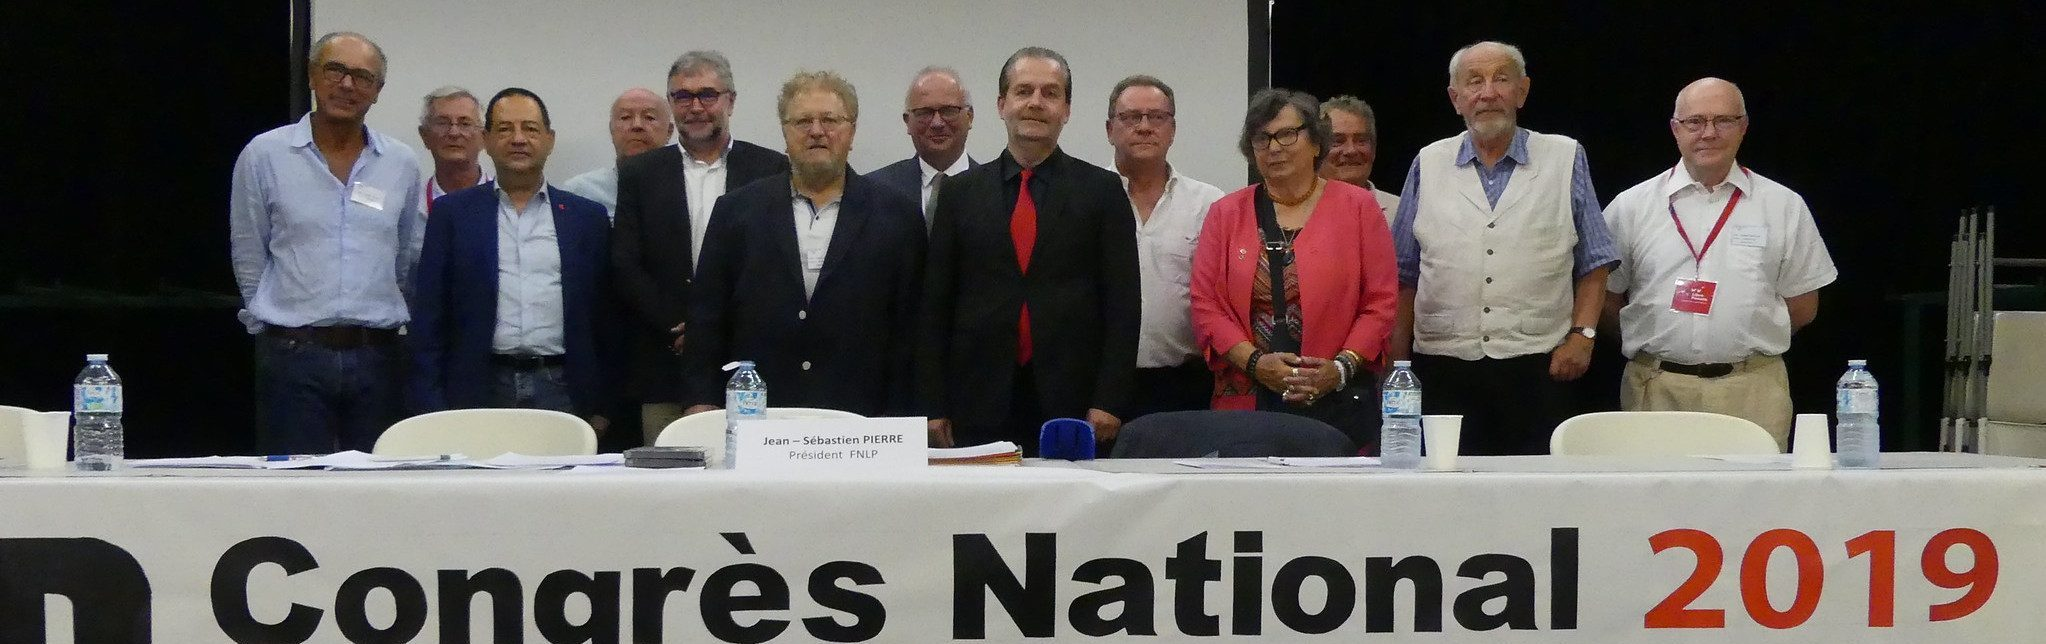 Les associations amies au congrès national d'Alizay (2019)